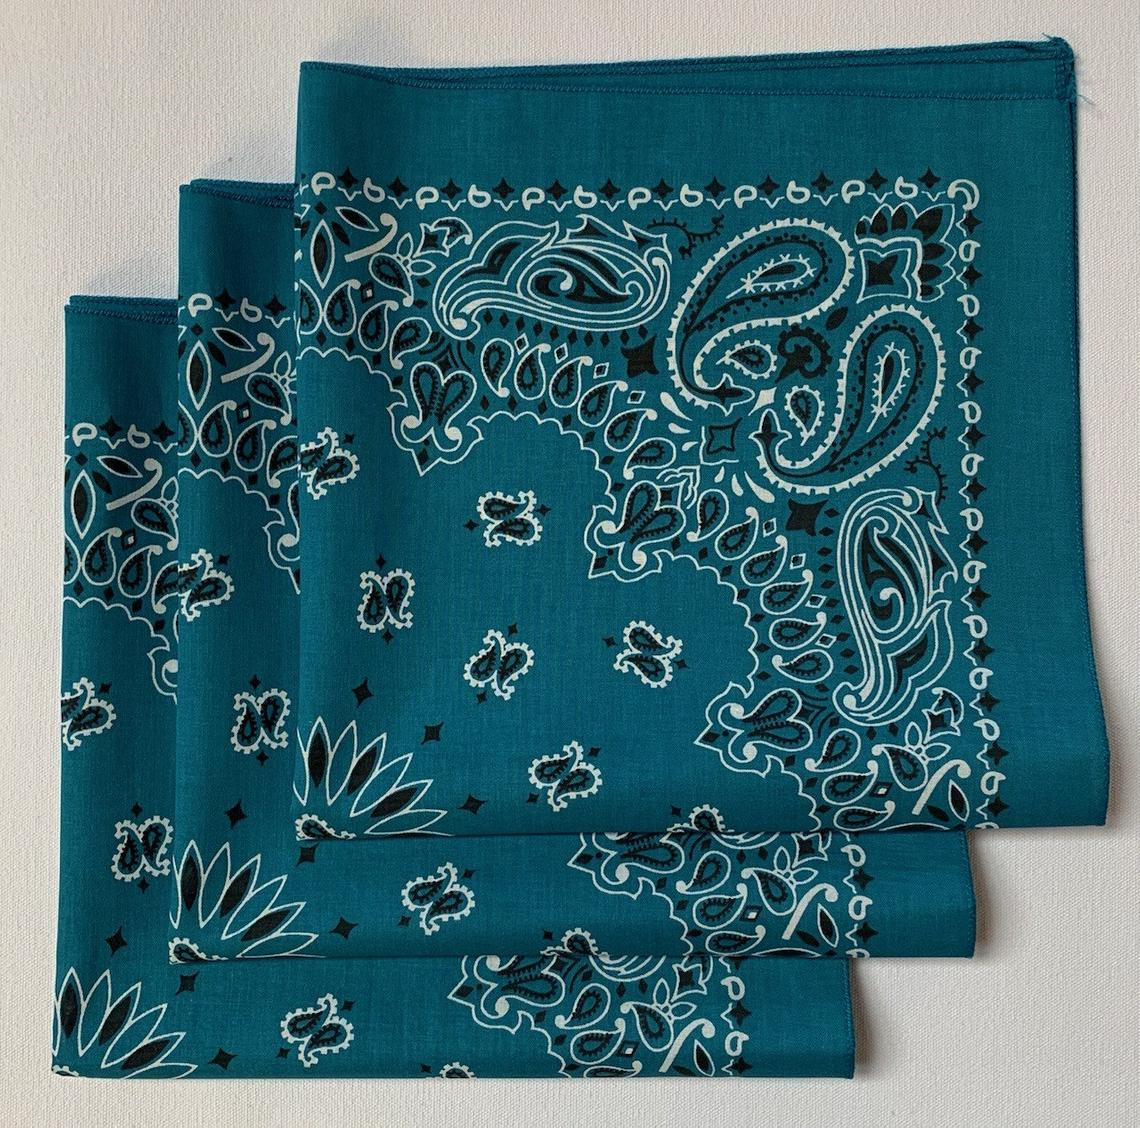 "Mirage Blue Paisley Bandanas - Made In The USA (3 Pk) 22"" x 22"""